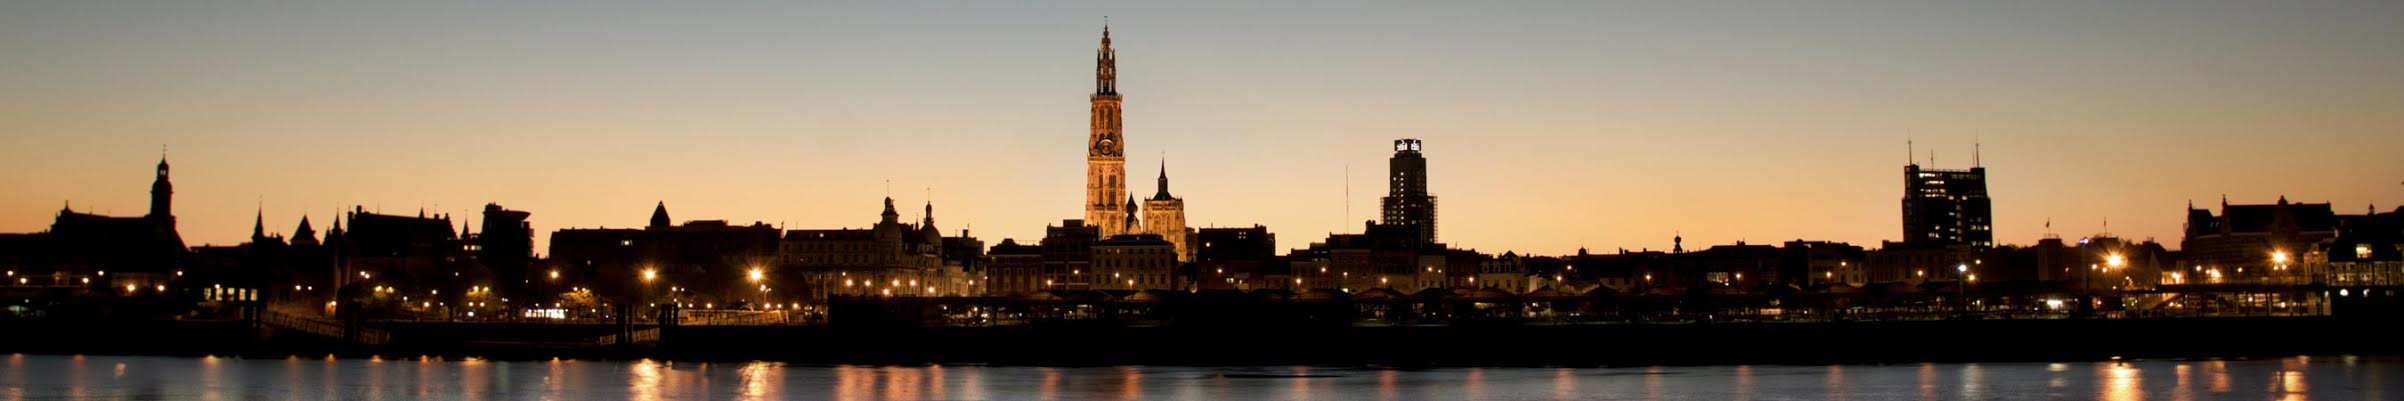 Antwerp Skyline by Night - Panorama - Peace in the City